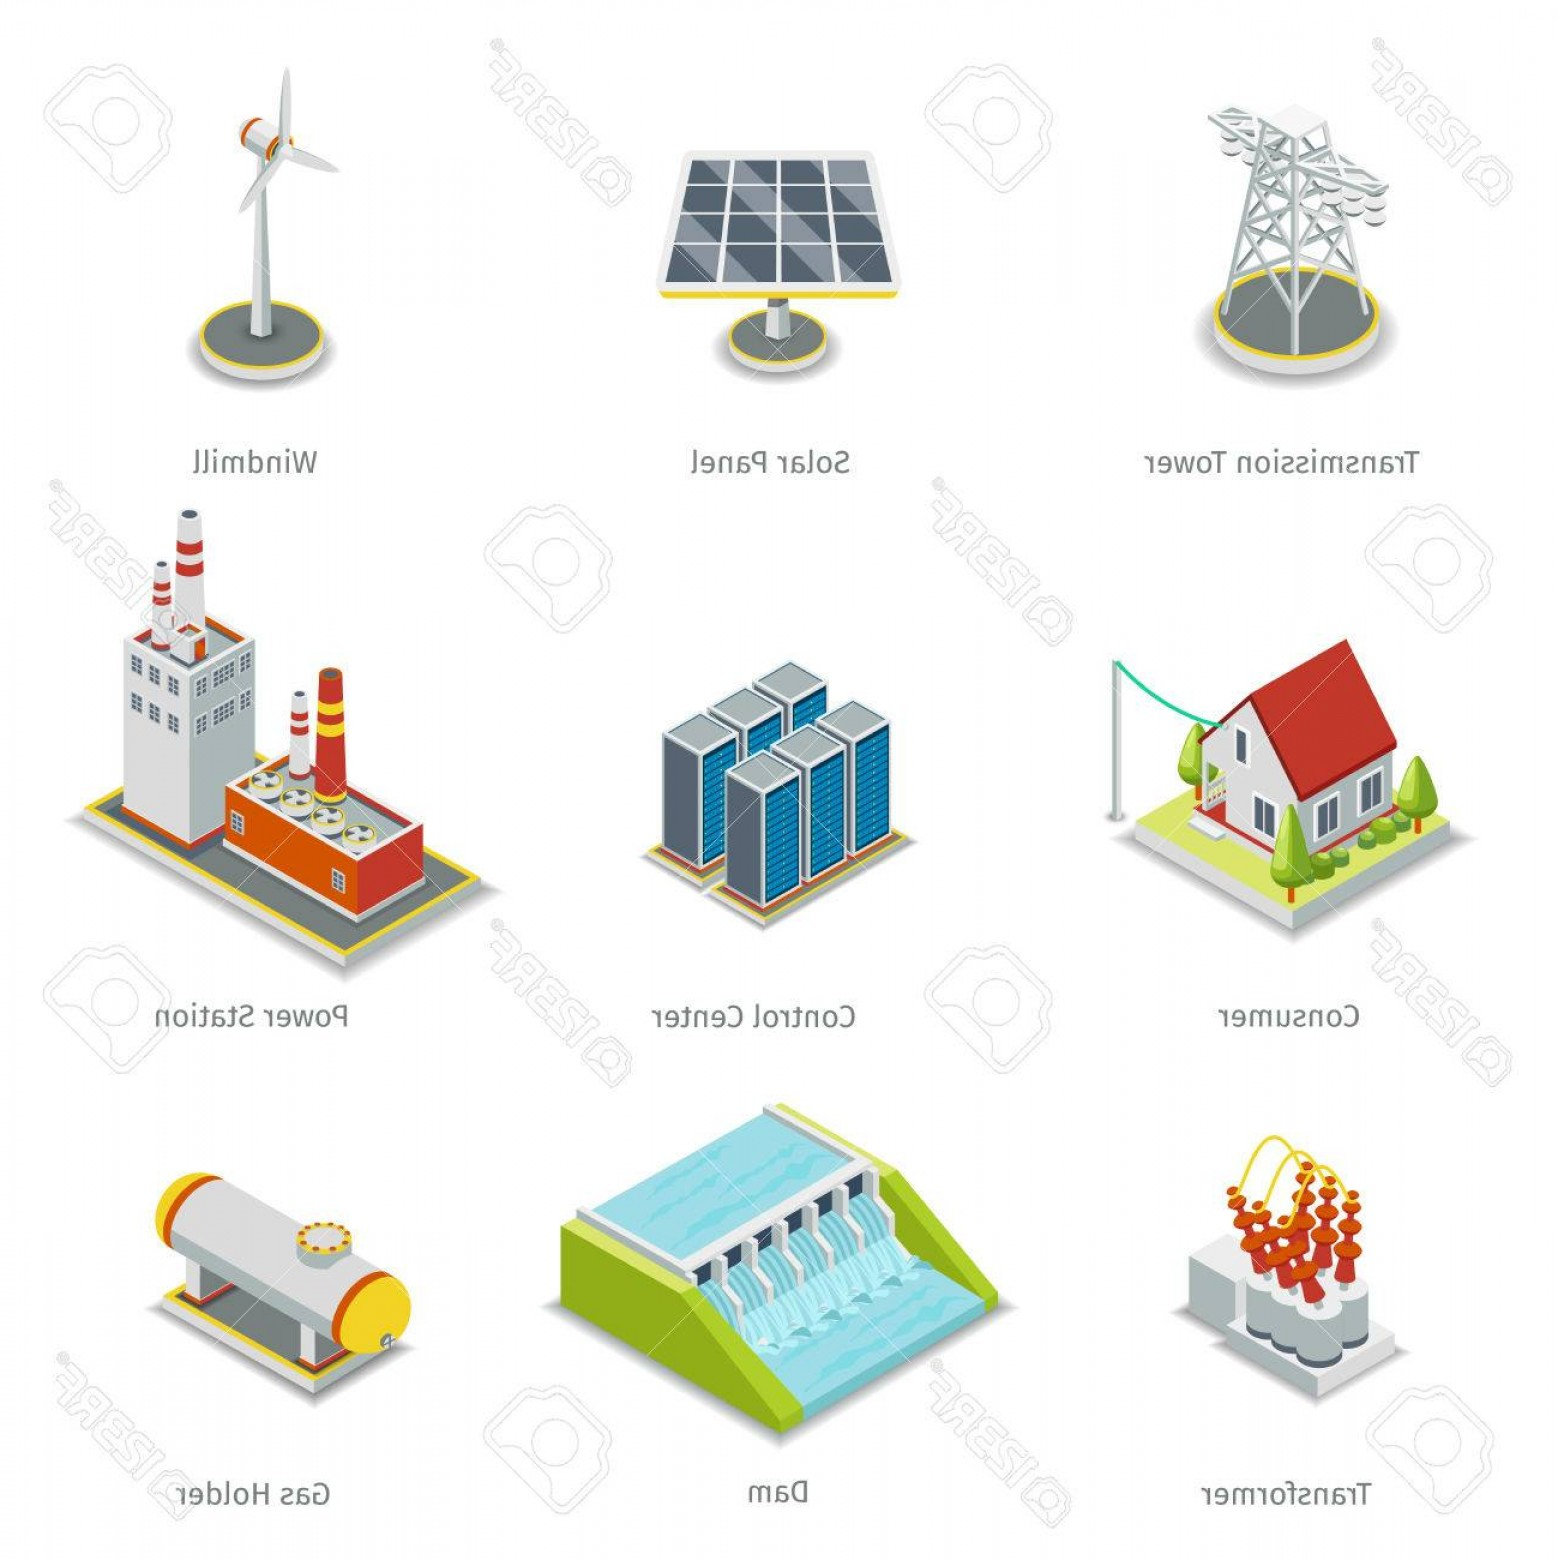 Transformer Vector Diagrams: Photostock Vector Smart Grid Elements Power Smart Grid Items Vector Set Energy And Electricity Transmission Tower Sola